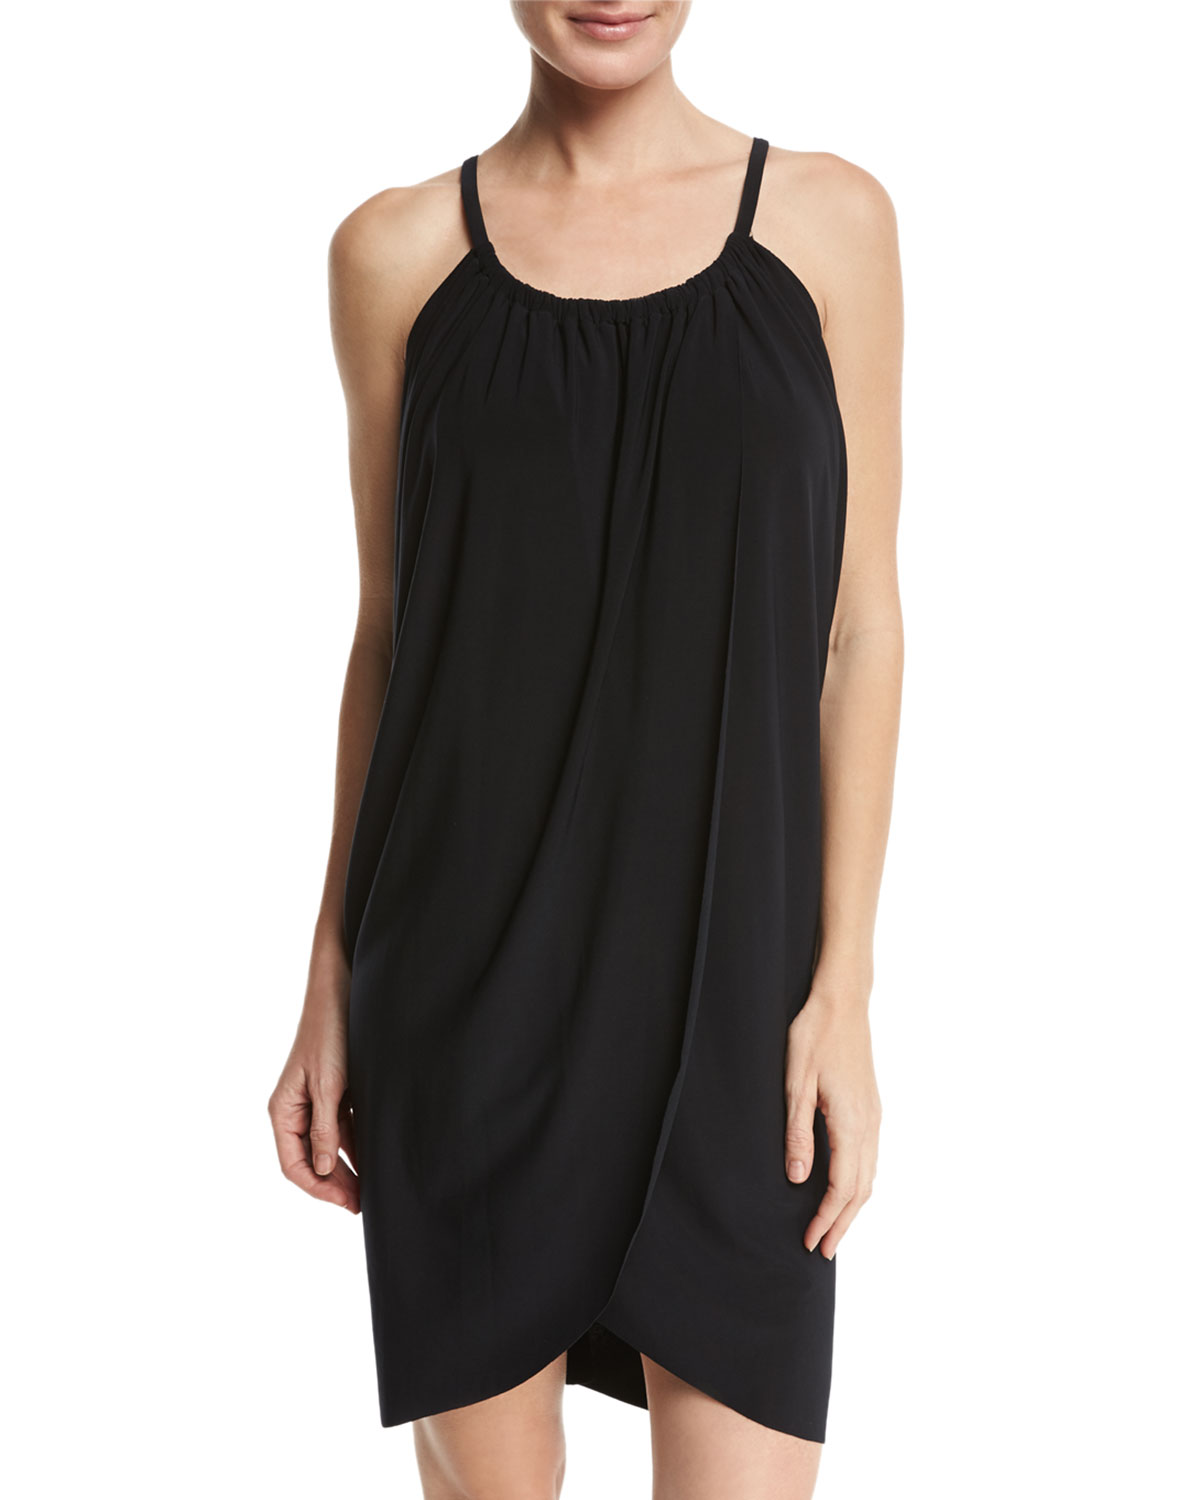 Draped Coverup Dress Black Plus Size